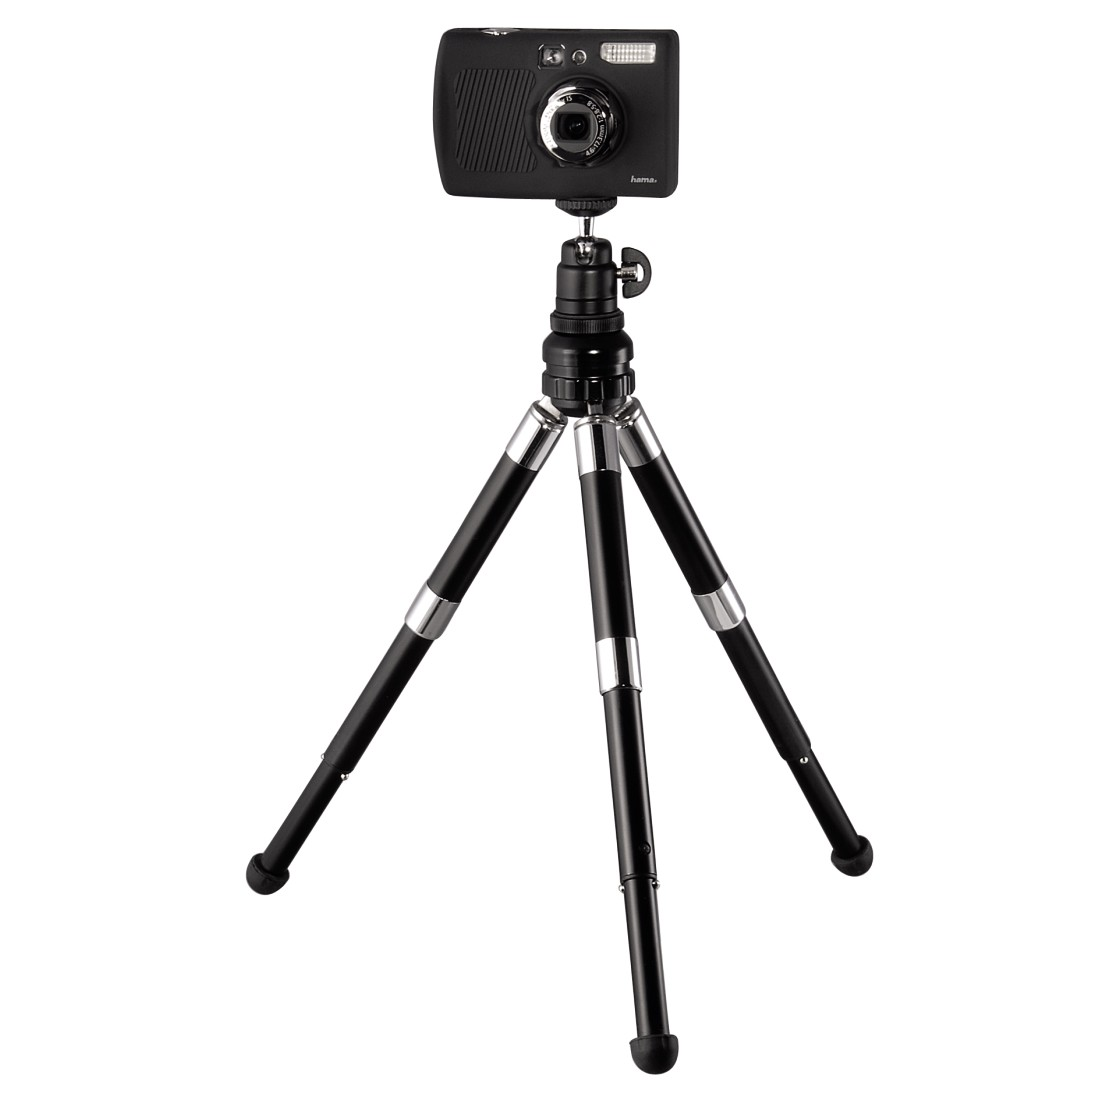 awx4 High-Res Appliance 4 - Hama, Traveller Multi Table Top Tripod, with Removable Telescopic Tube